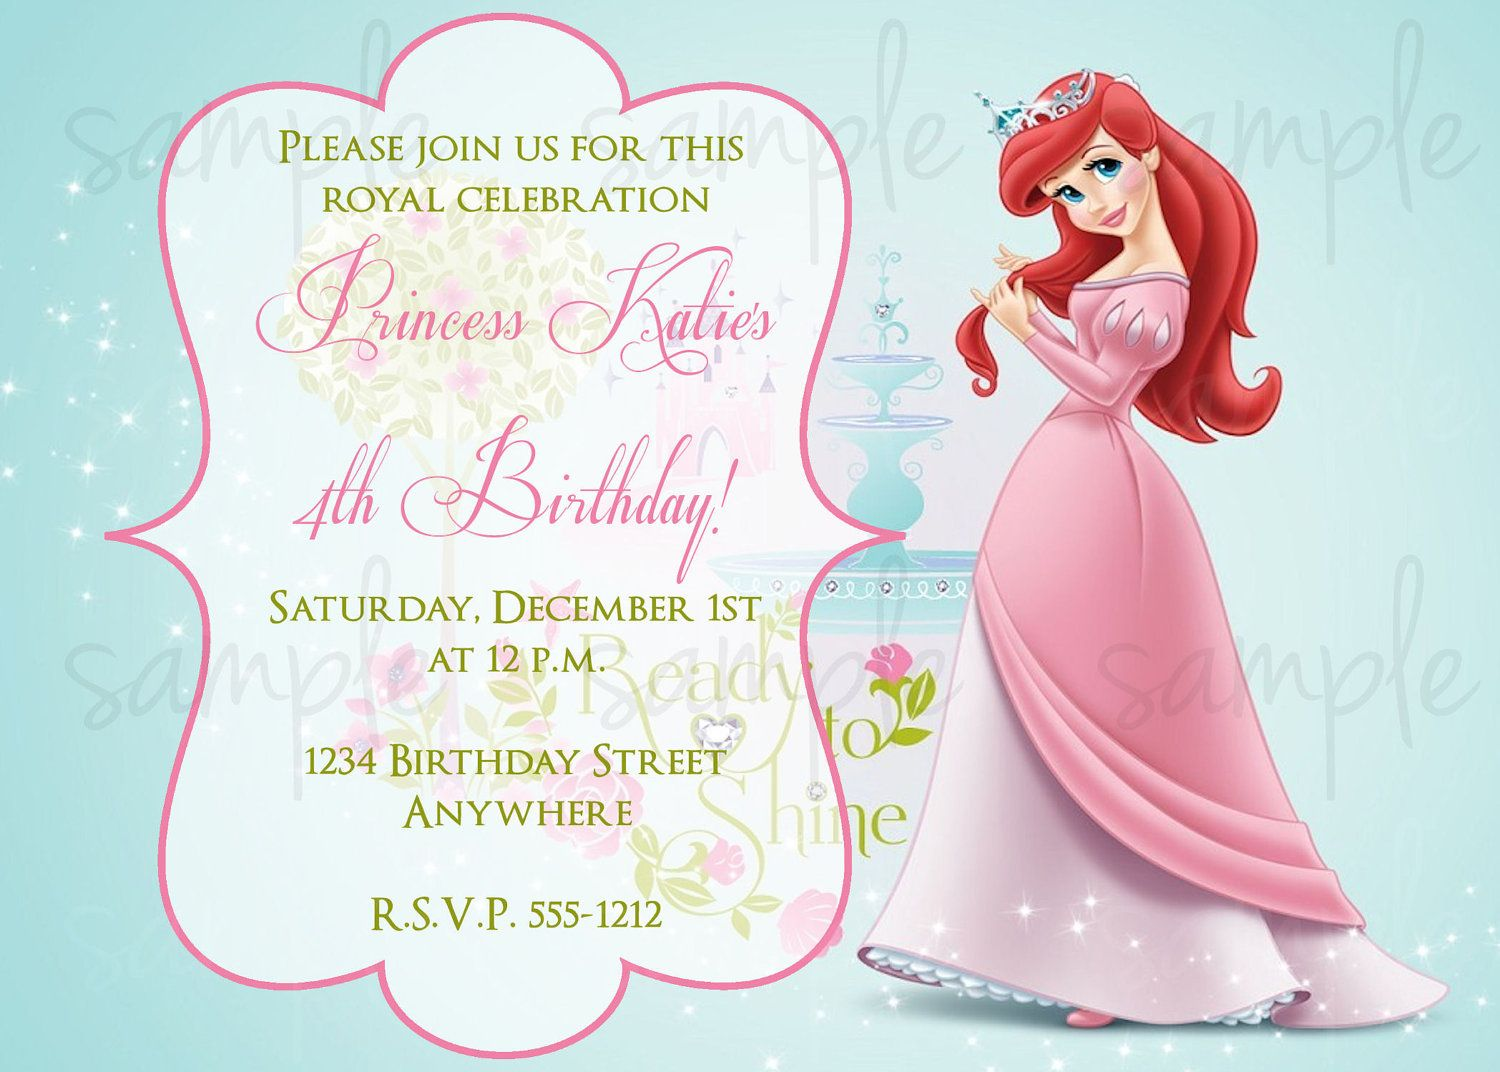 Princess Ariel Birthday Invitation By LoveLifeInvites On Etsy